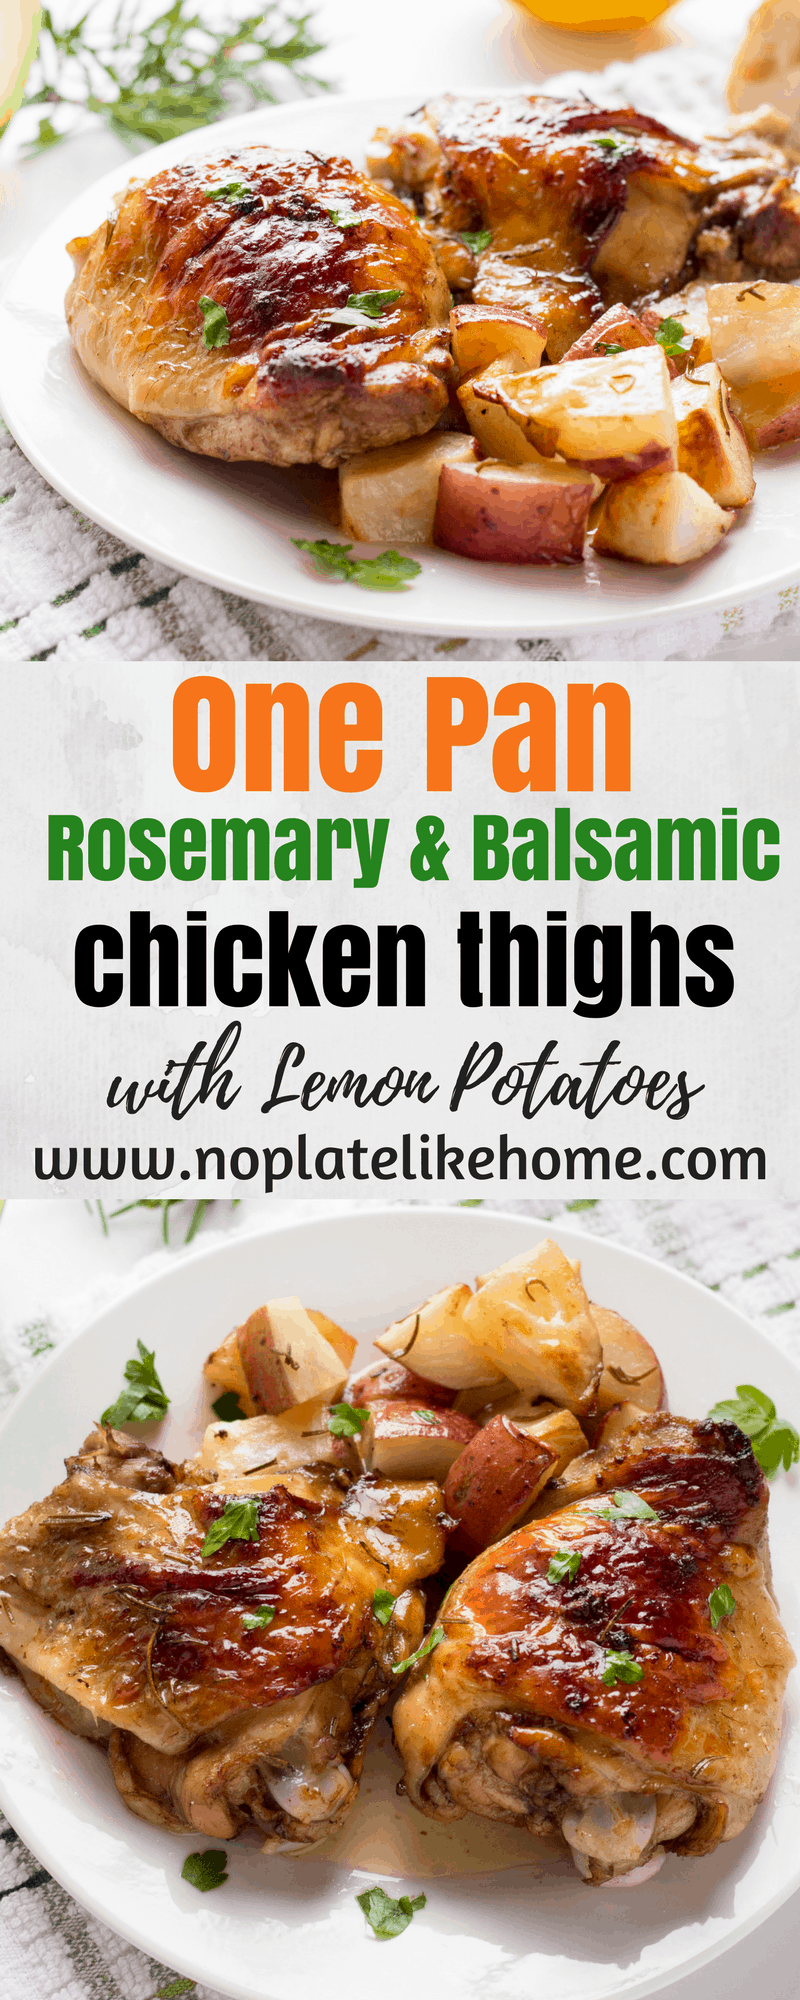 One Pan Rosemary and Balsamic Chicken Thighs and Lemon Potatoes